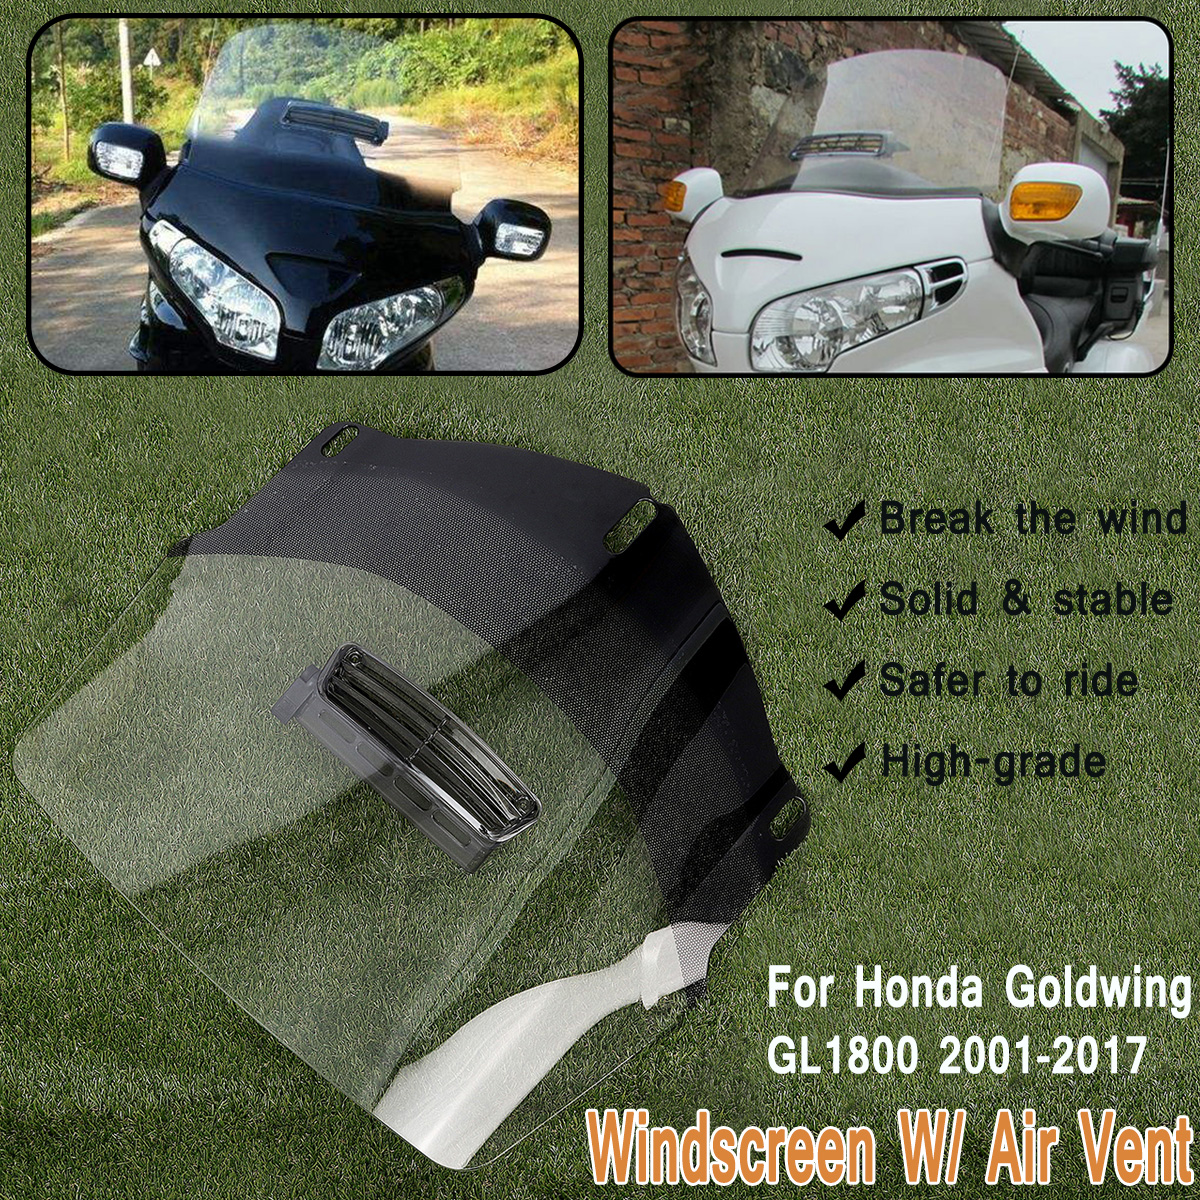 Cielo sereno Moto Parabrezza Screen Protector W/Air Vent Fits per Honda Goldwing GL1800 2001-2017 ABS Scudo Anteriore